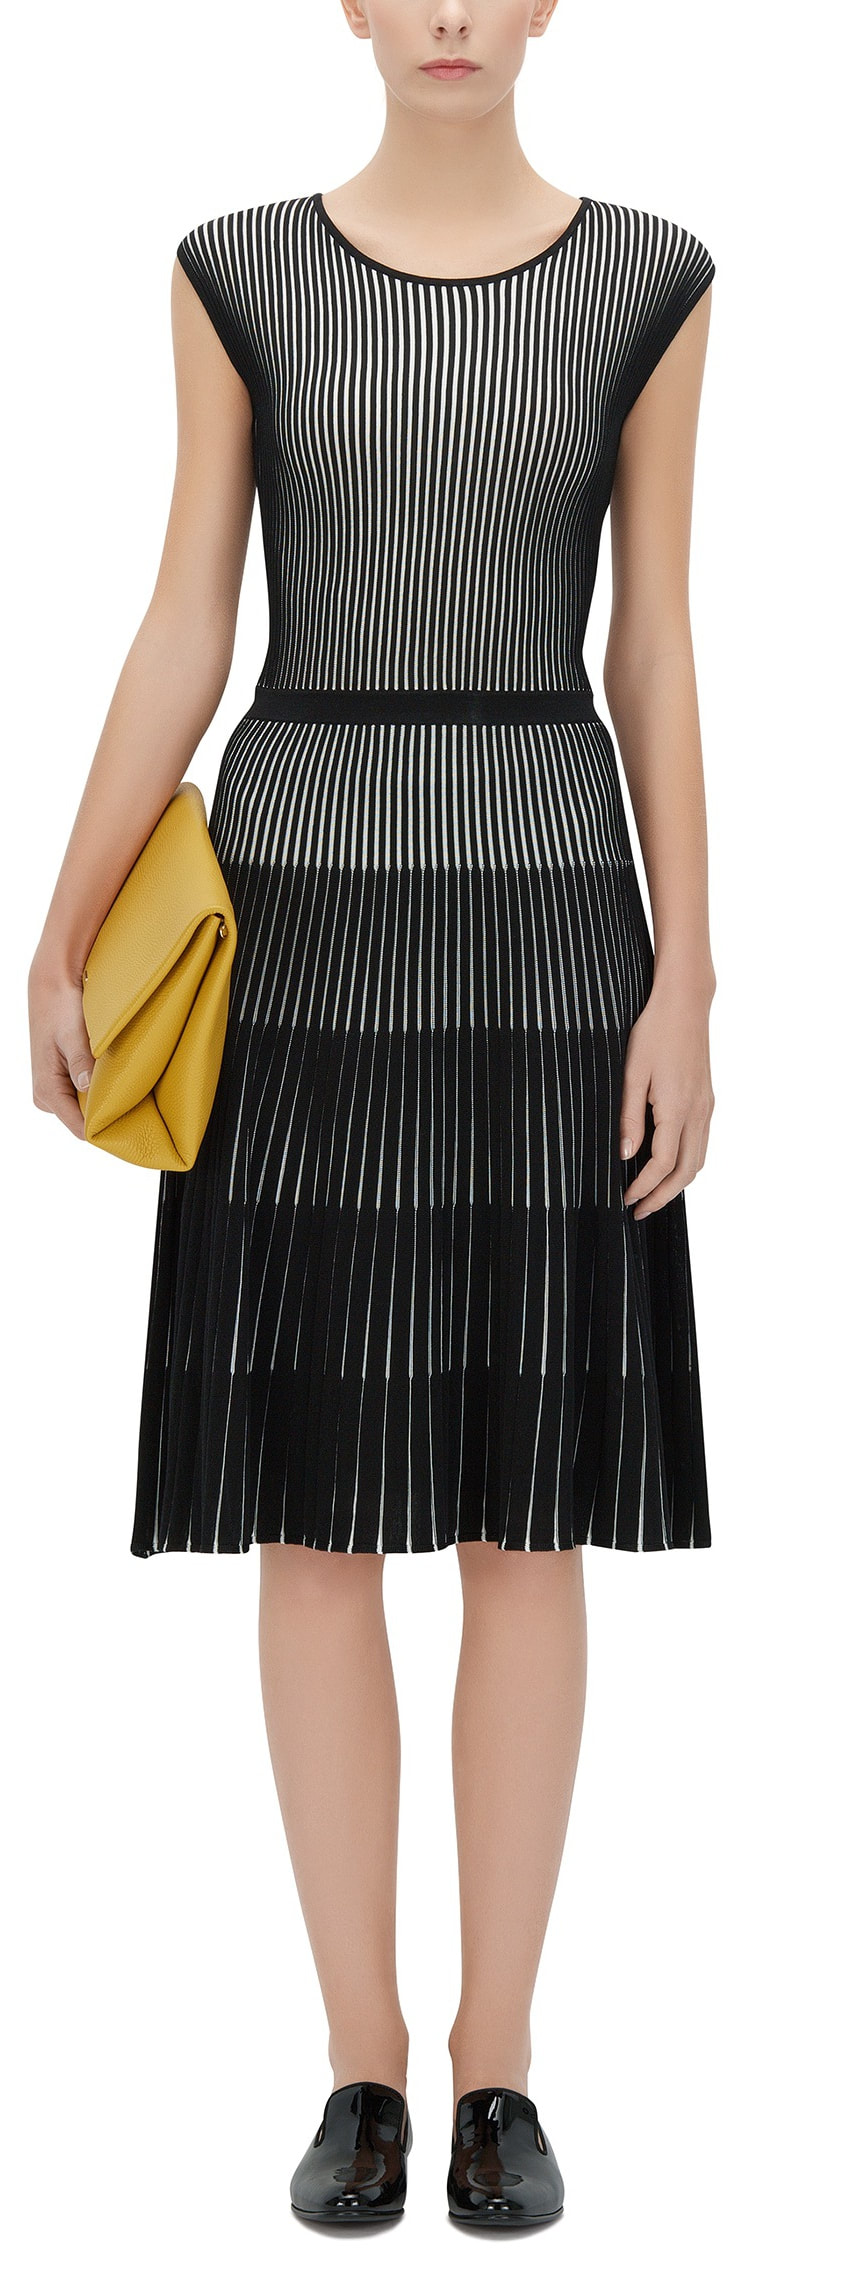 Hugo Boss Franca Black and White Stripe Dress